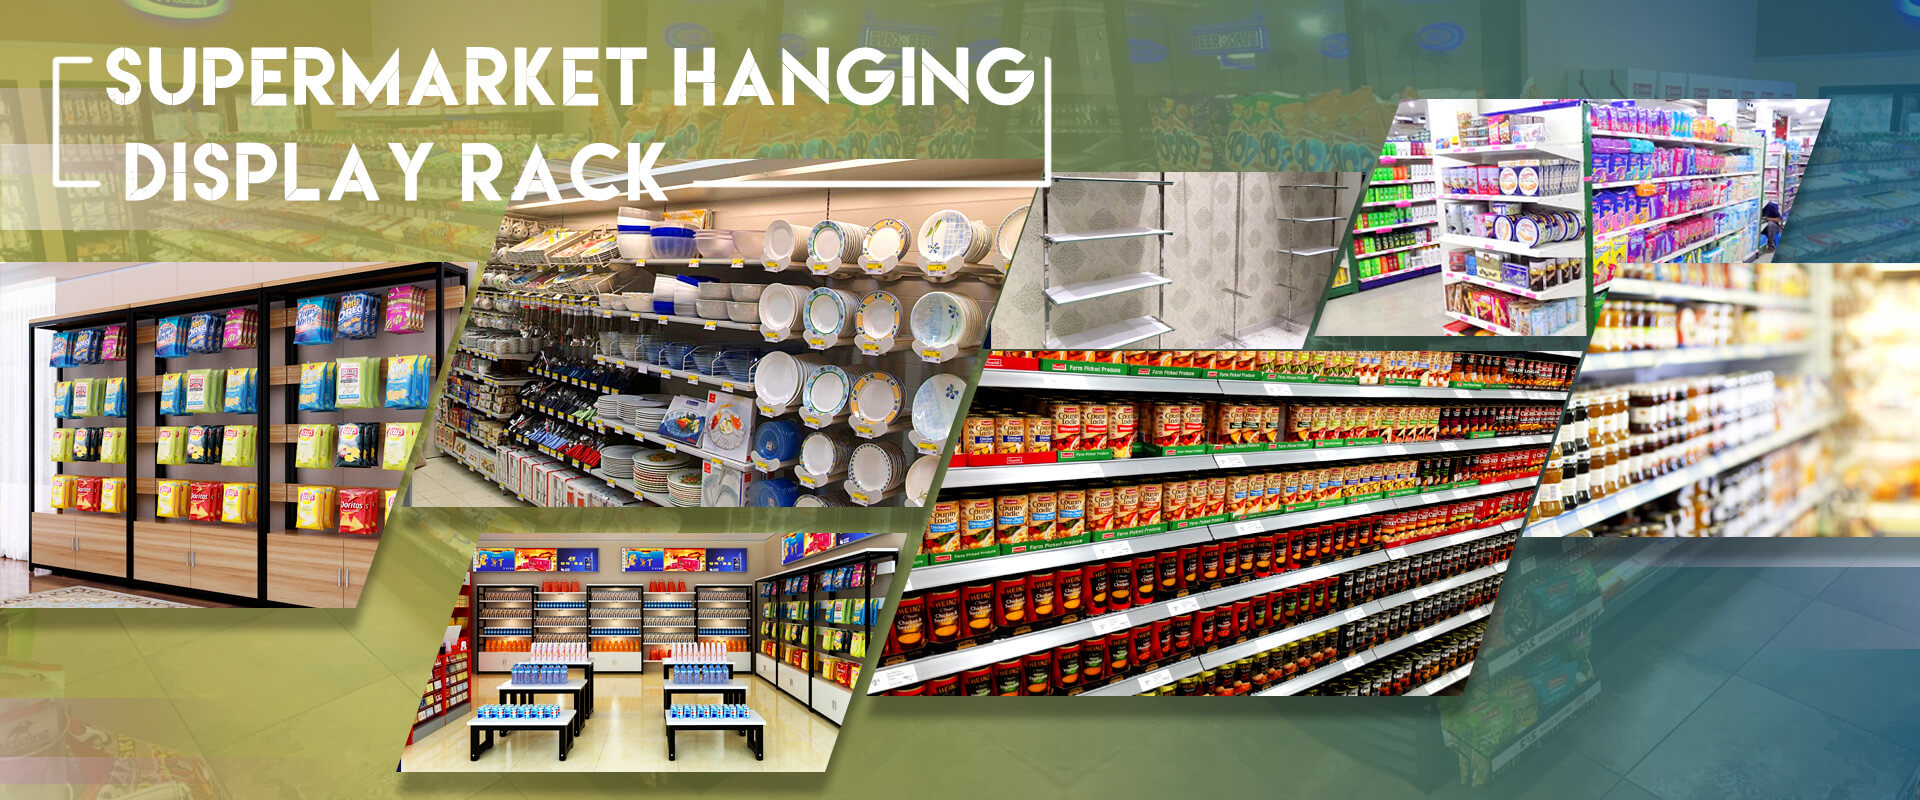 Supermarket Hanging Display Rack Manufacturers